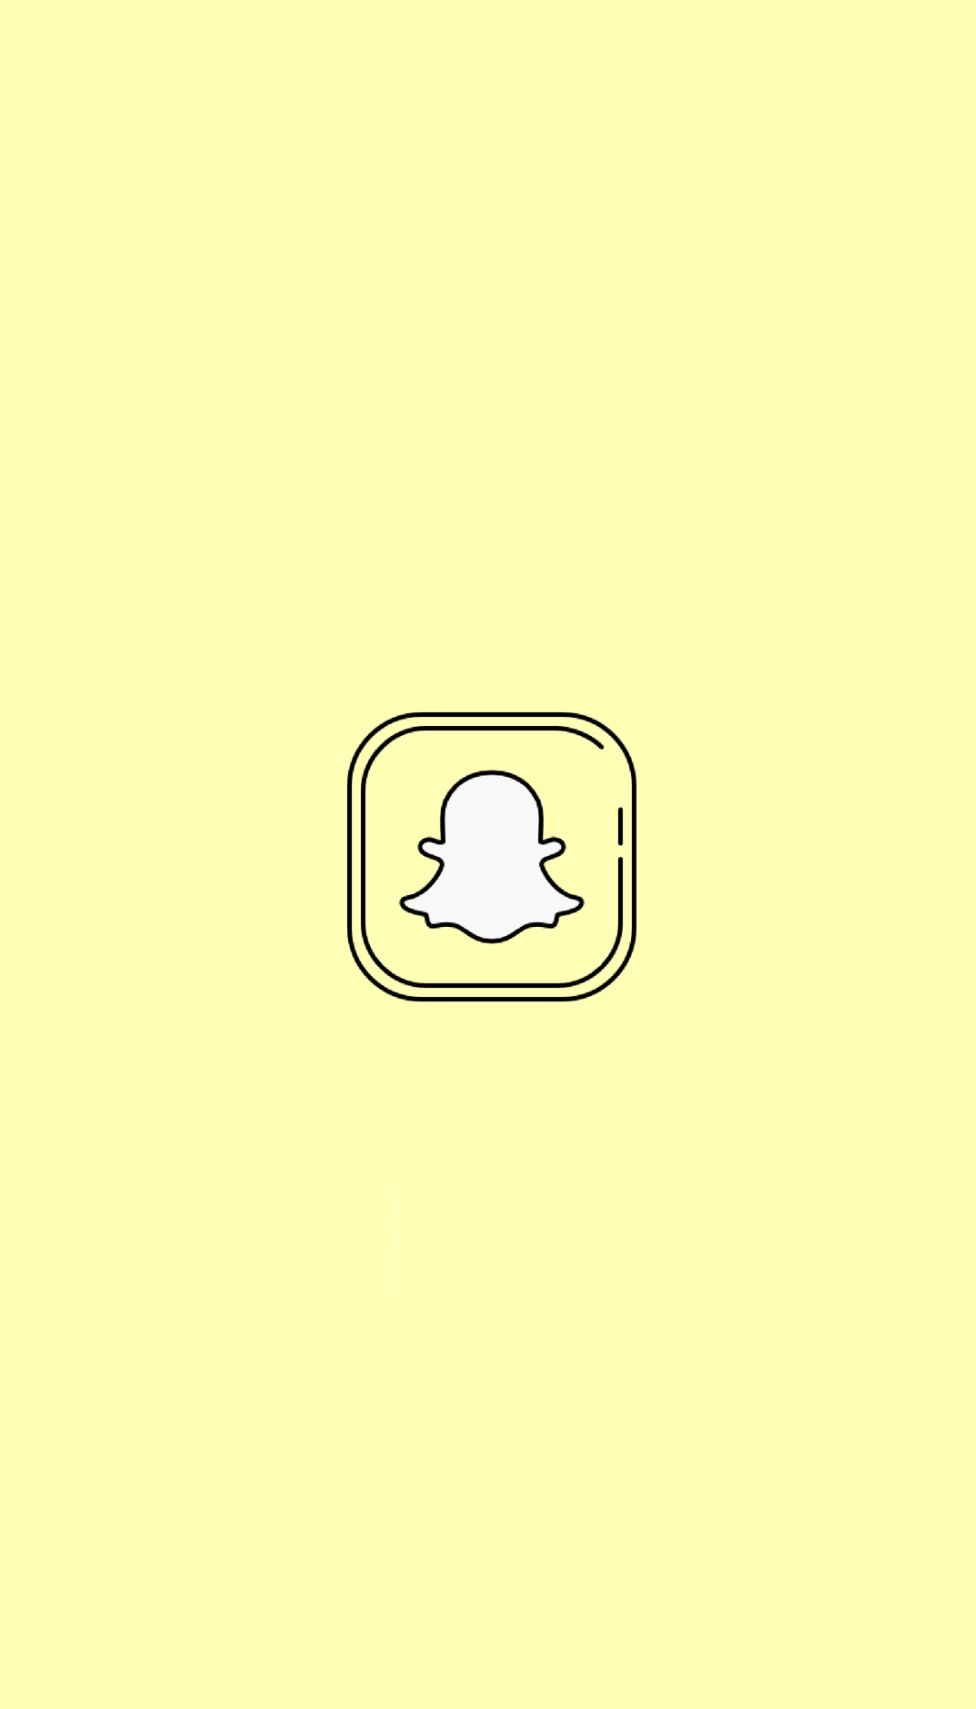 Snapchat In 2019 Instagram Highlight Icons Snapchat Logo